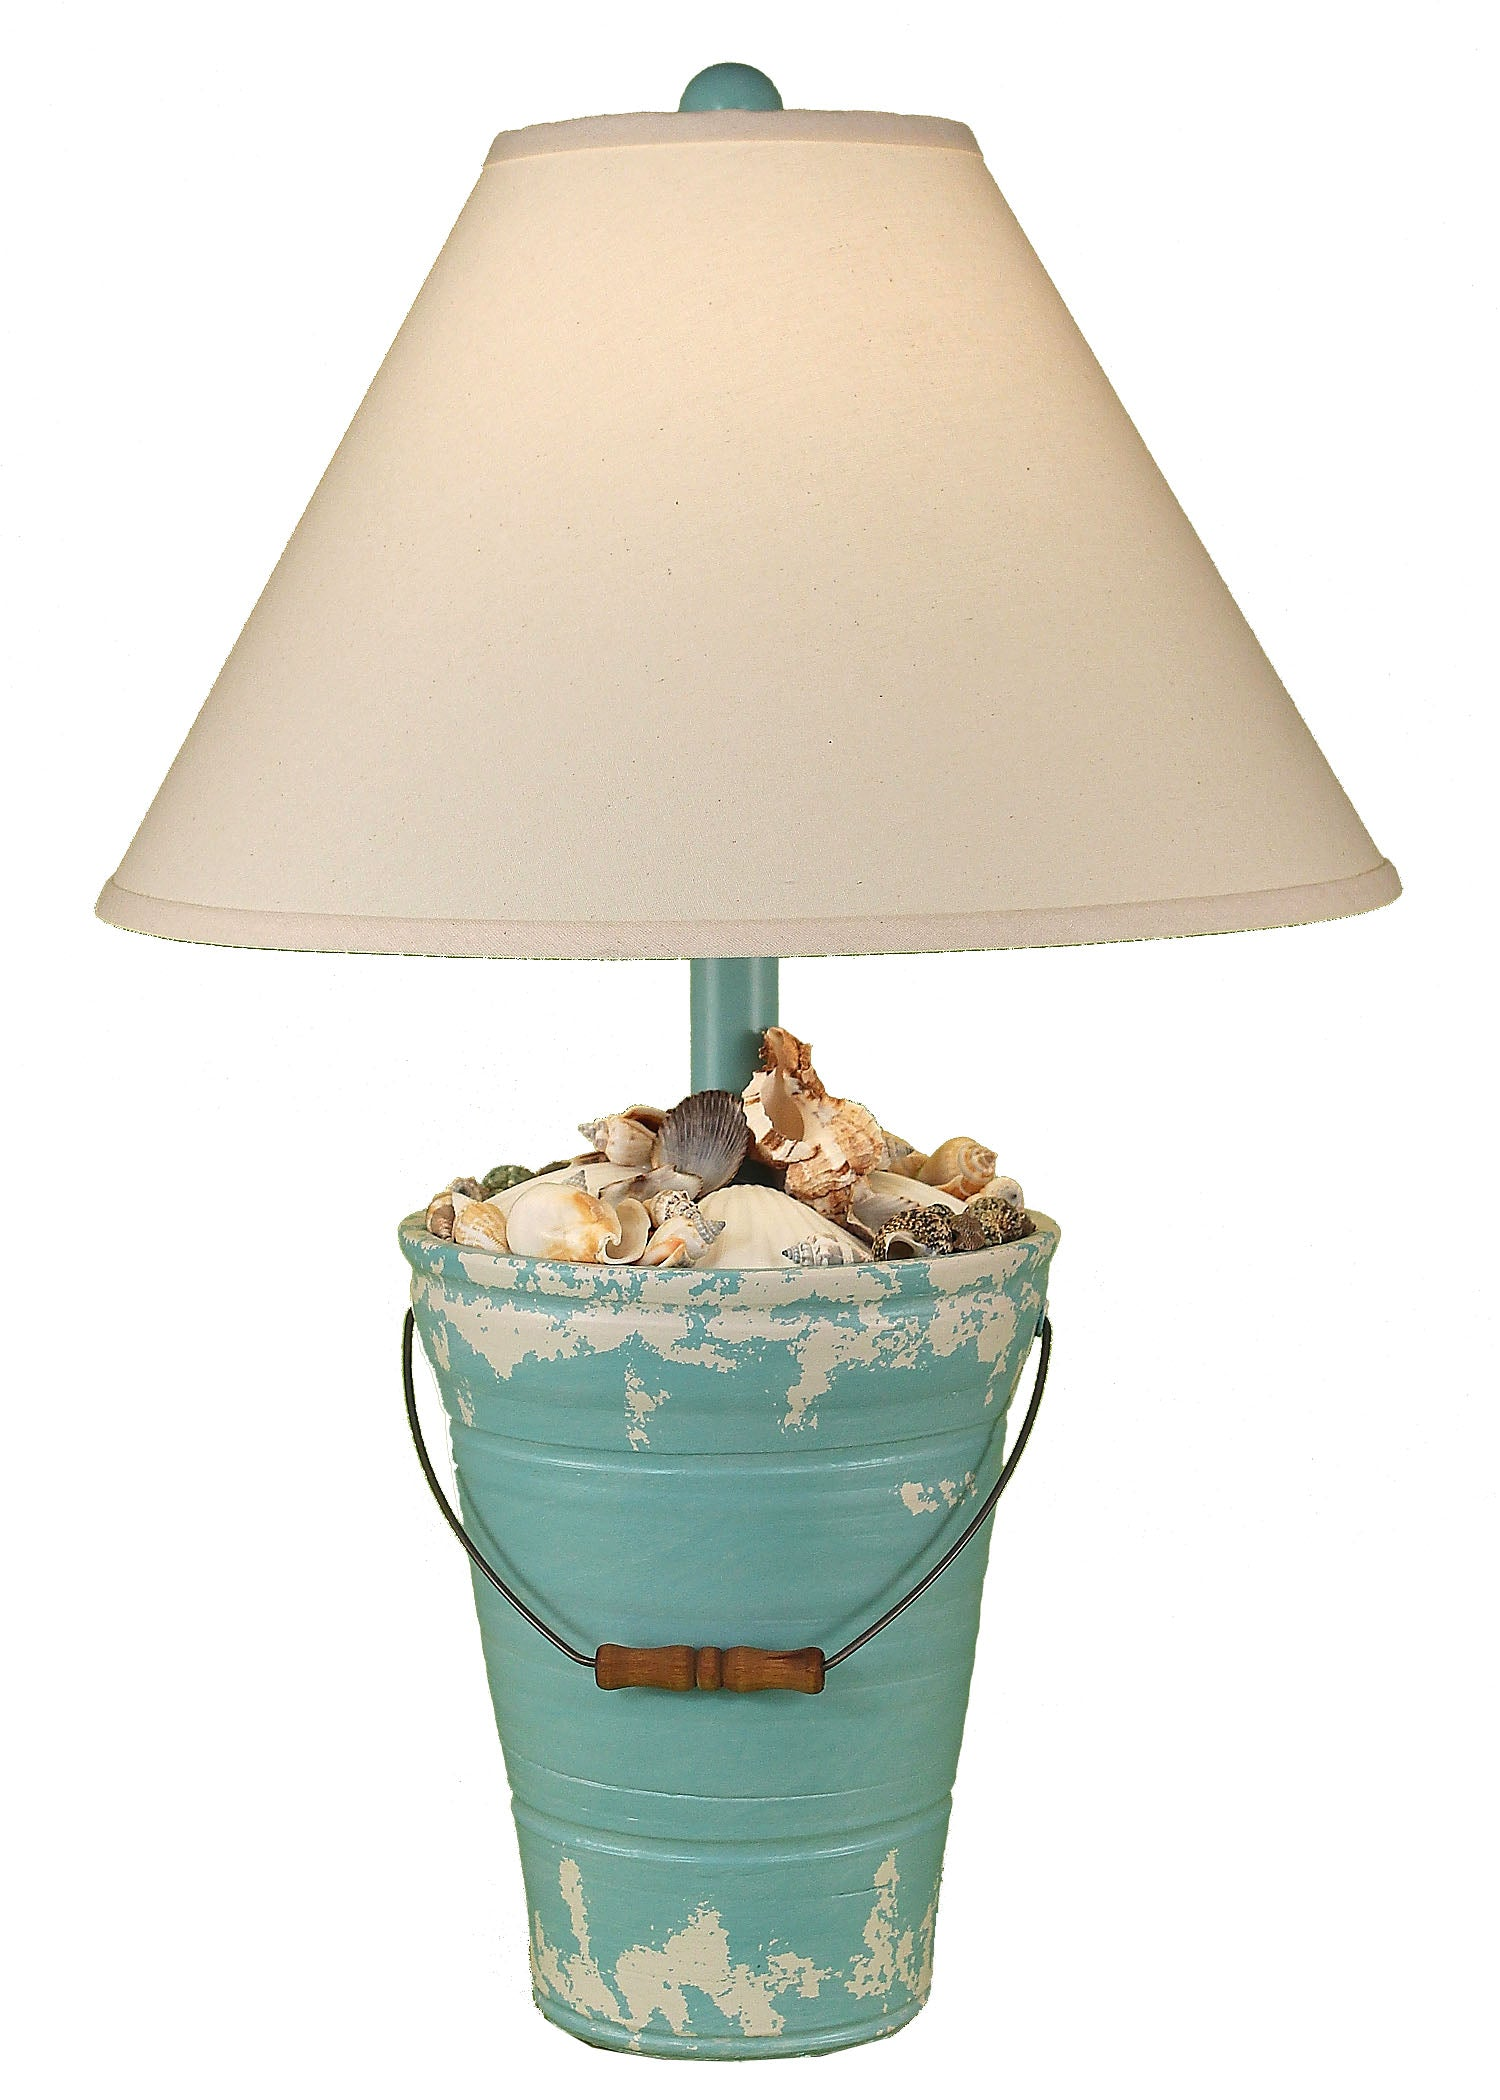 Tattered Turquoise Sea Bucket of Shells Table Lamp - Coast Lamp Shop